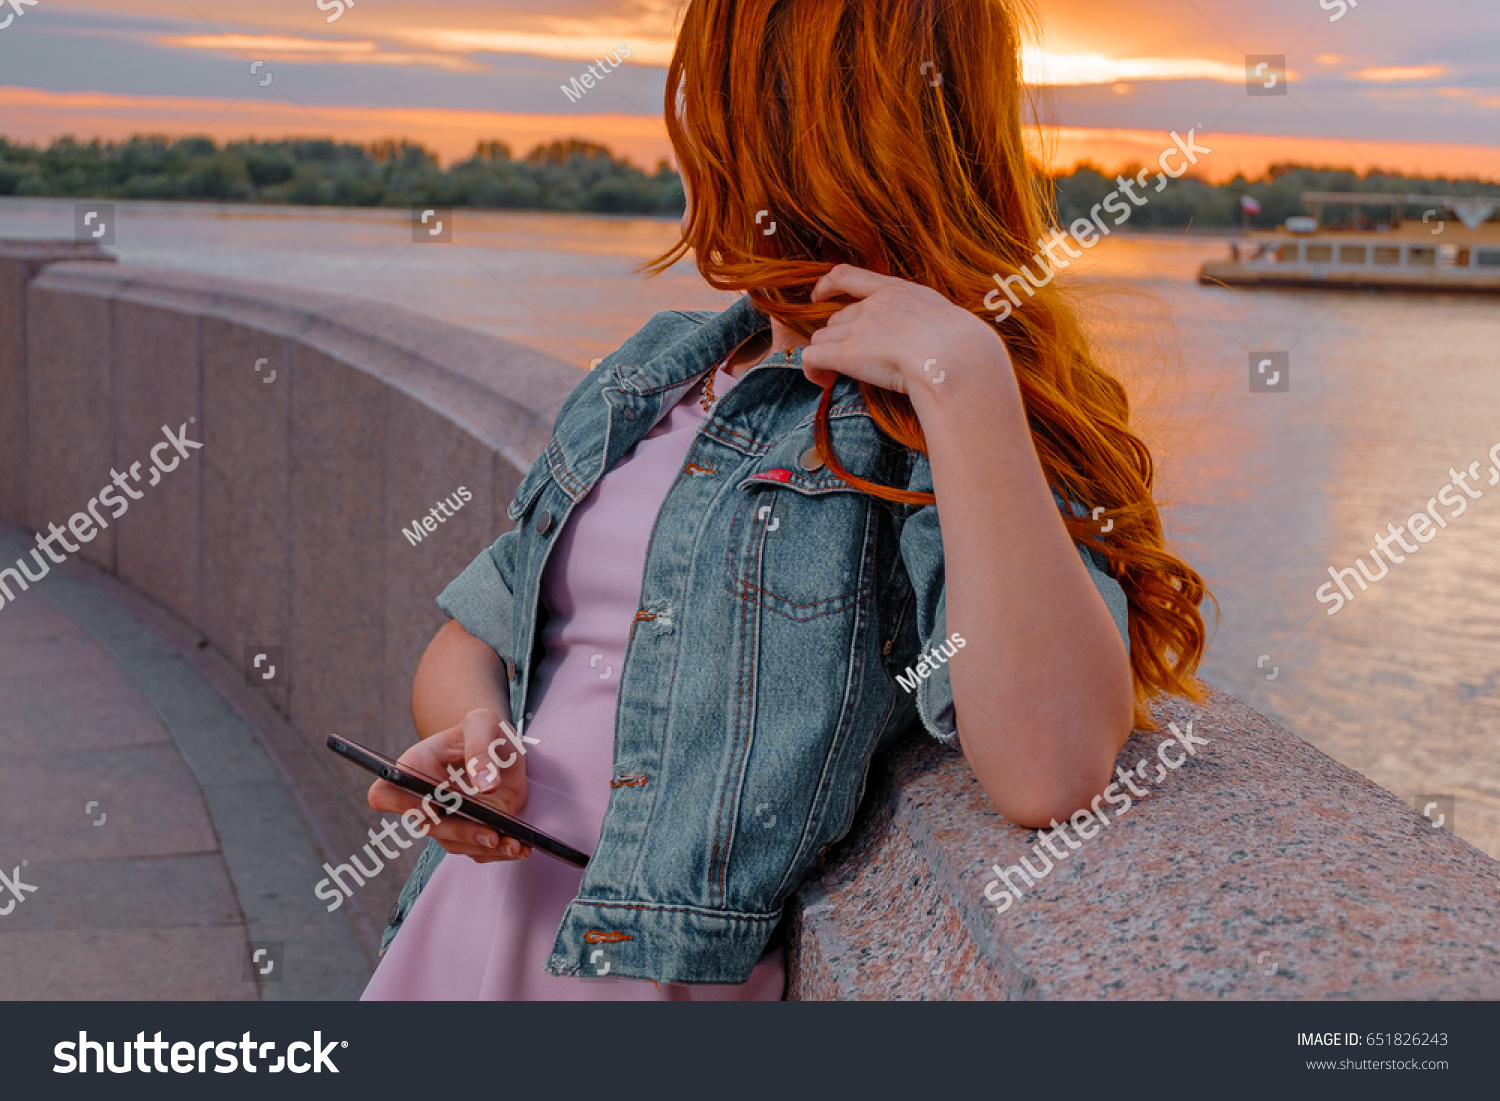 stock-photo-red-haired-woman-with-smartp